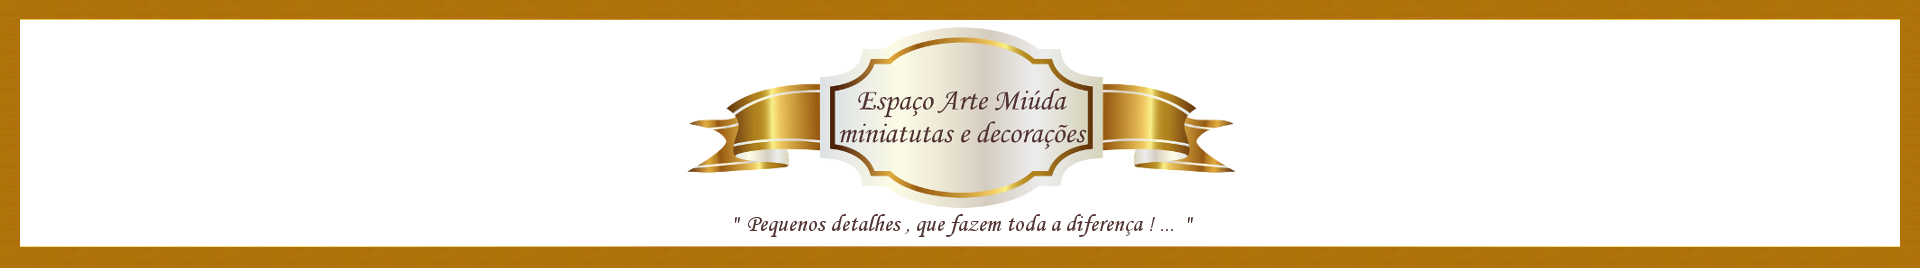 ENI  FLIX    -    Arte  mida em